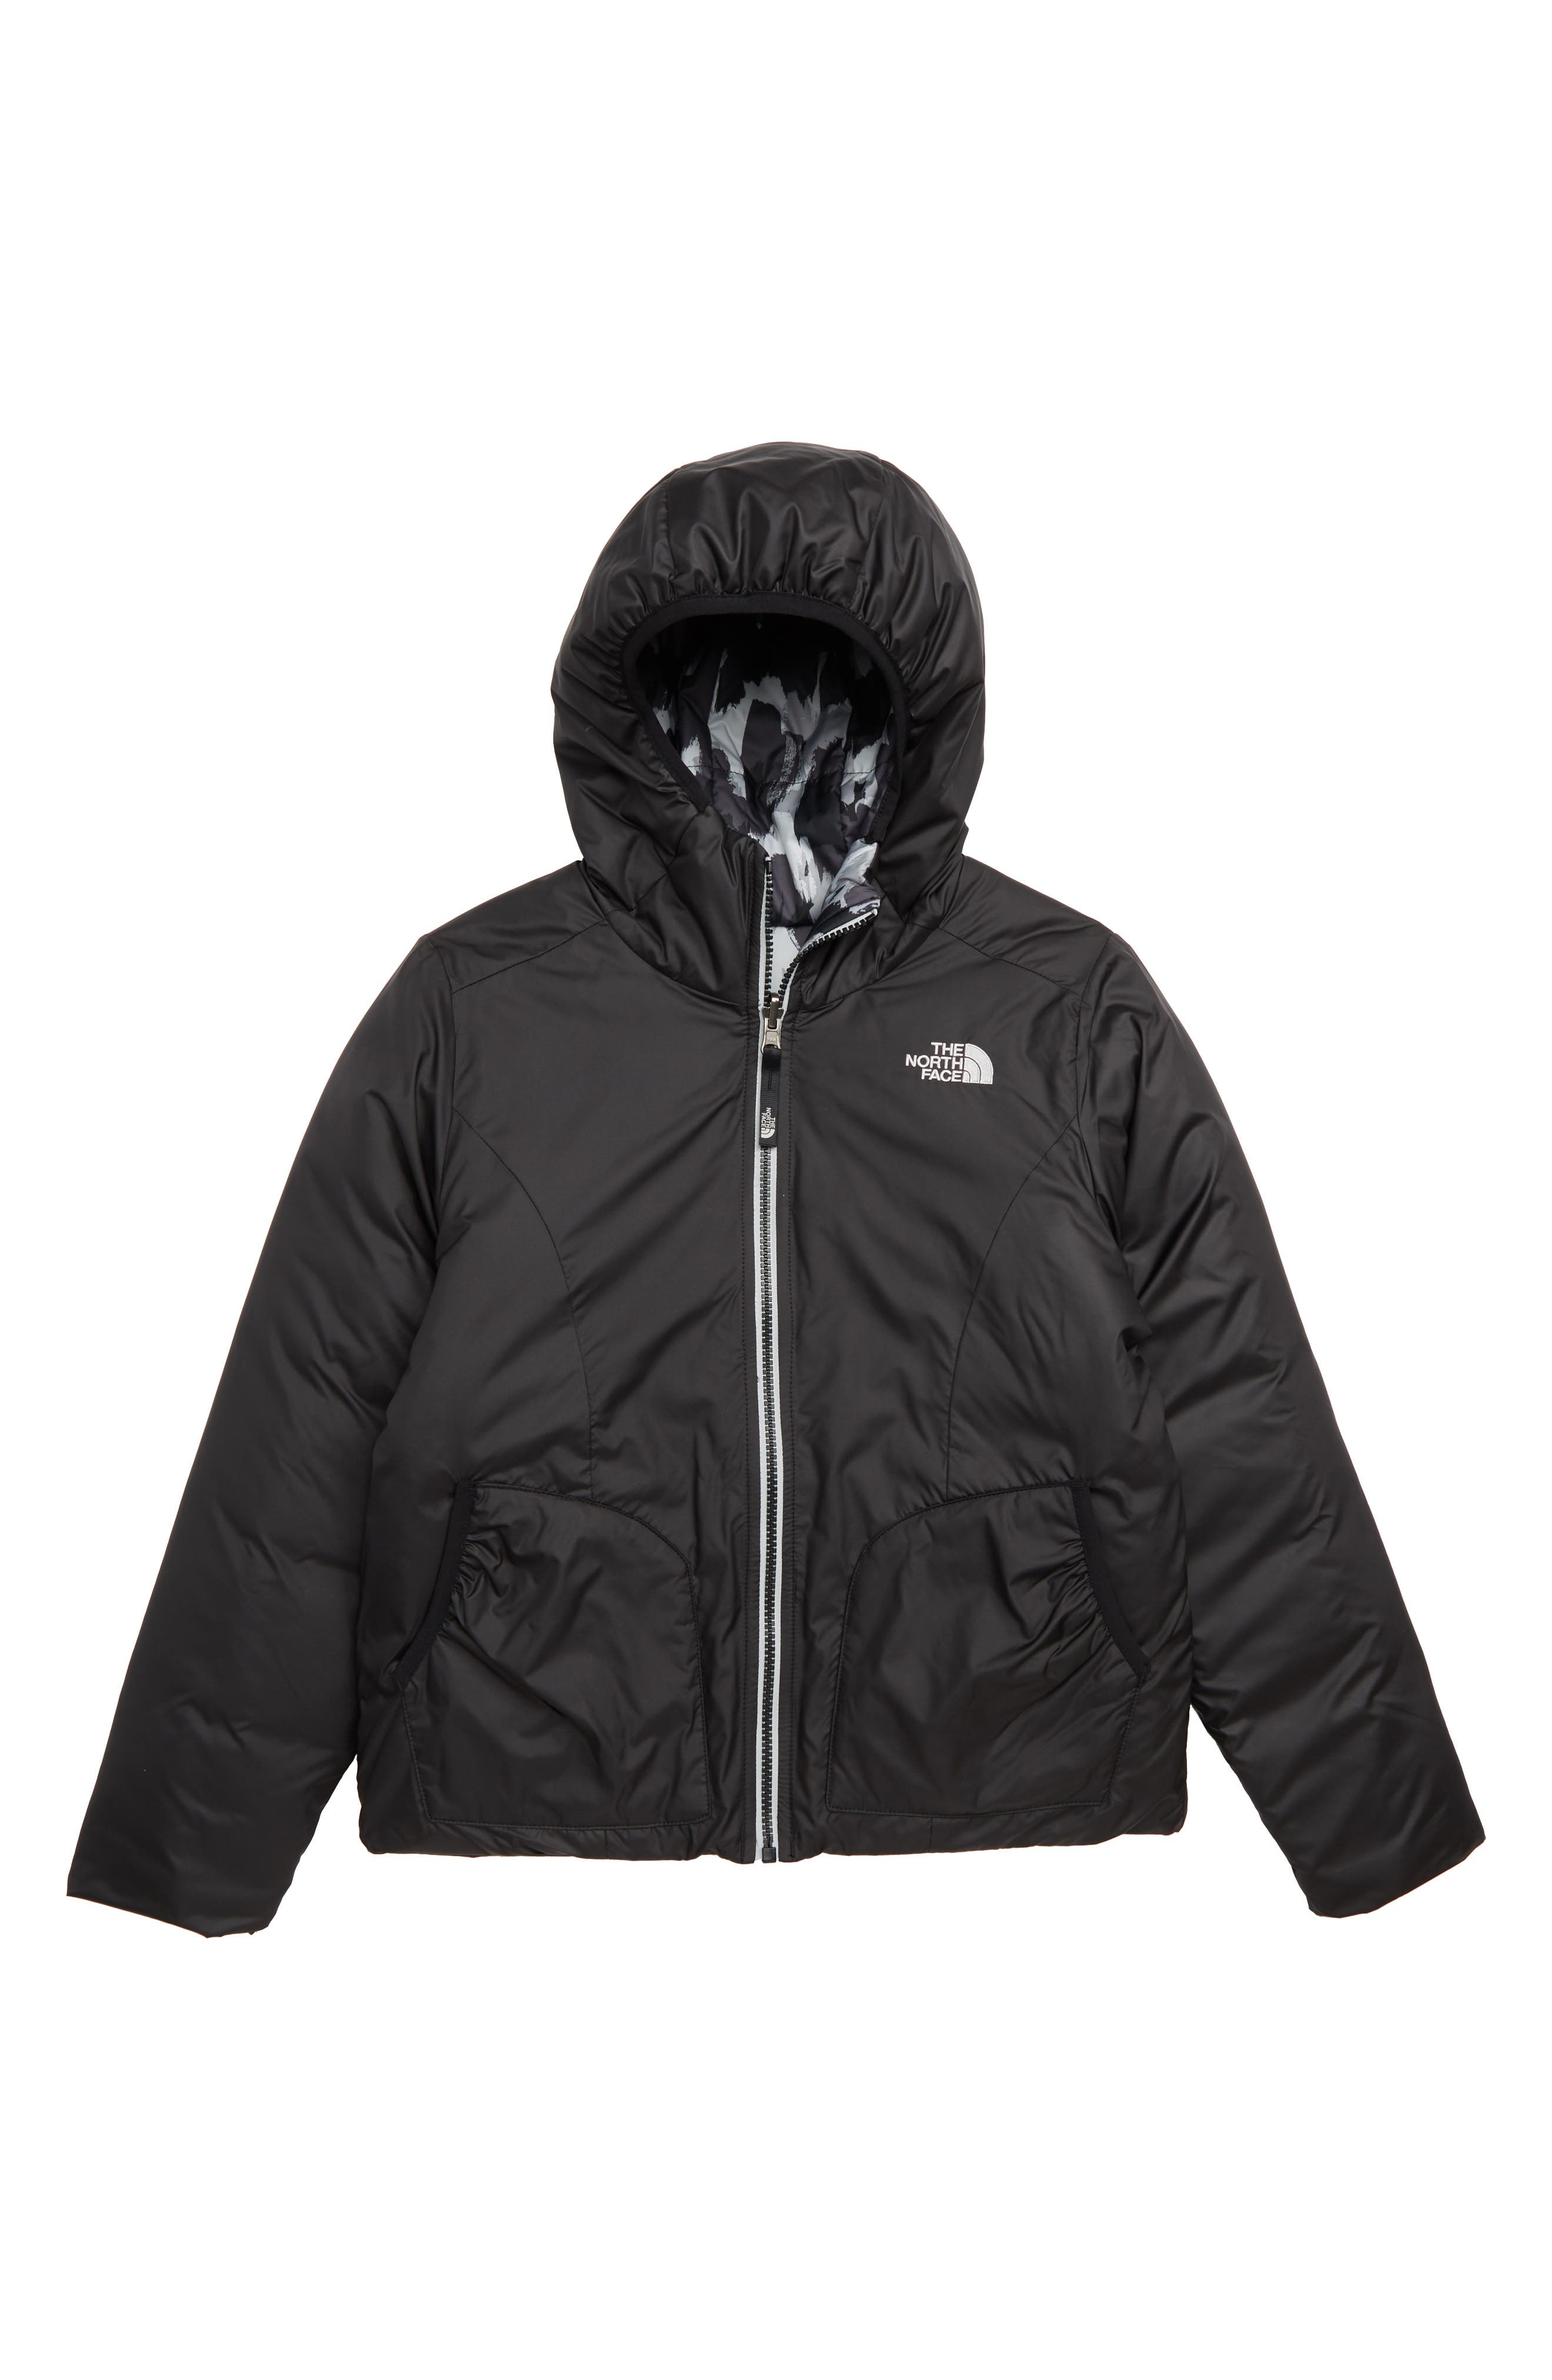 THE NORTH FACE, Perrito Reversible Water-Repellent Hooded Jacket, Main thumbnail 1, color, 001